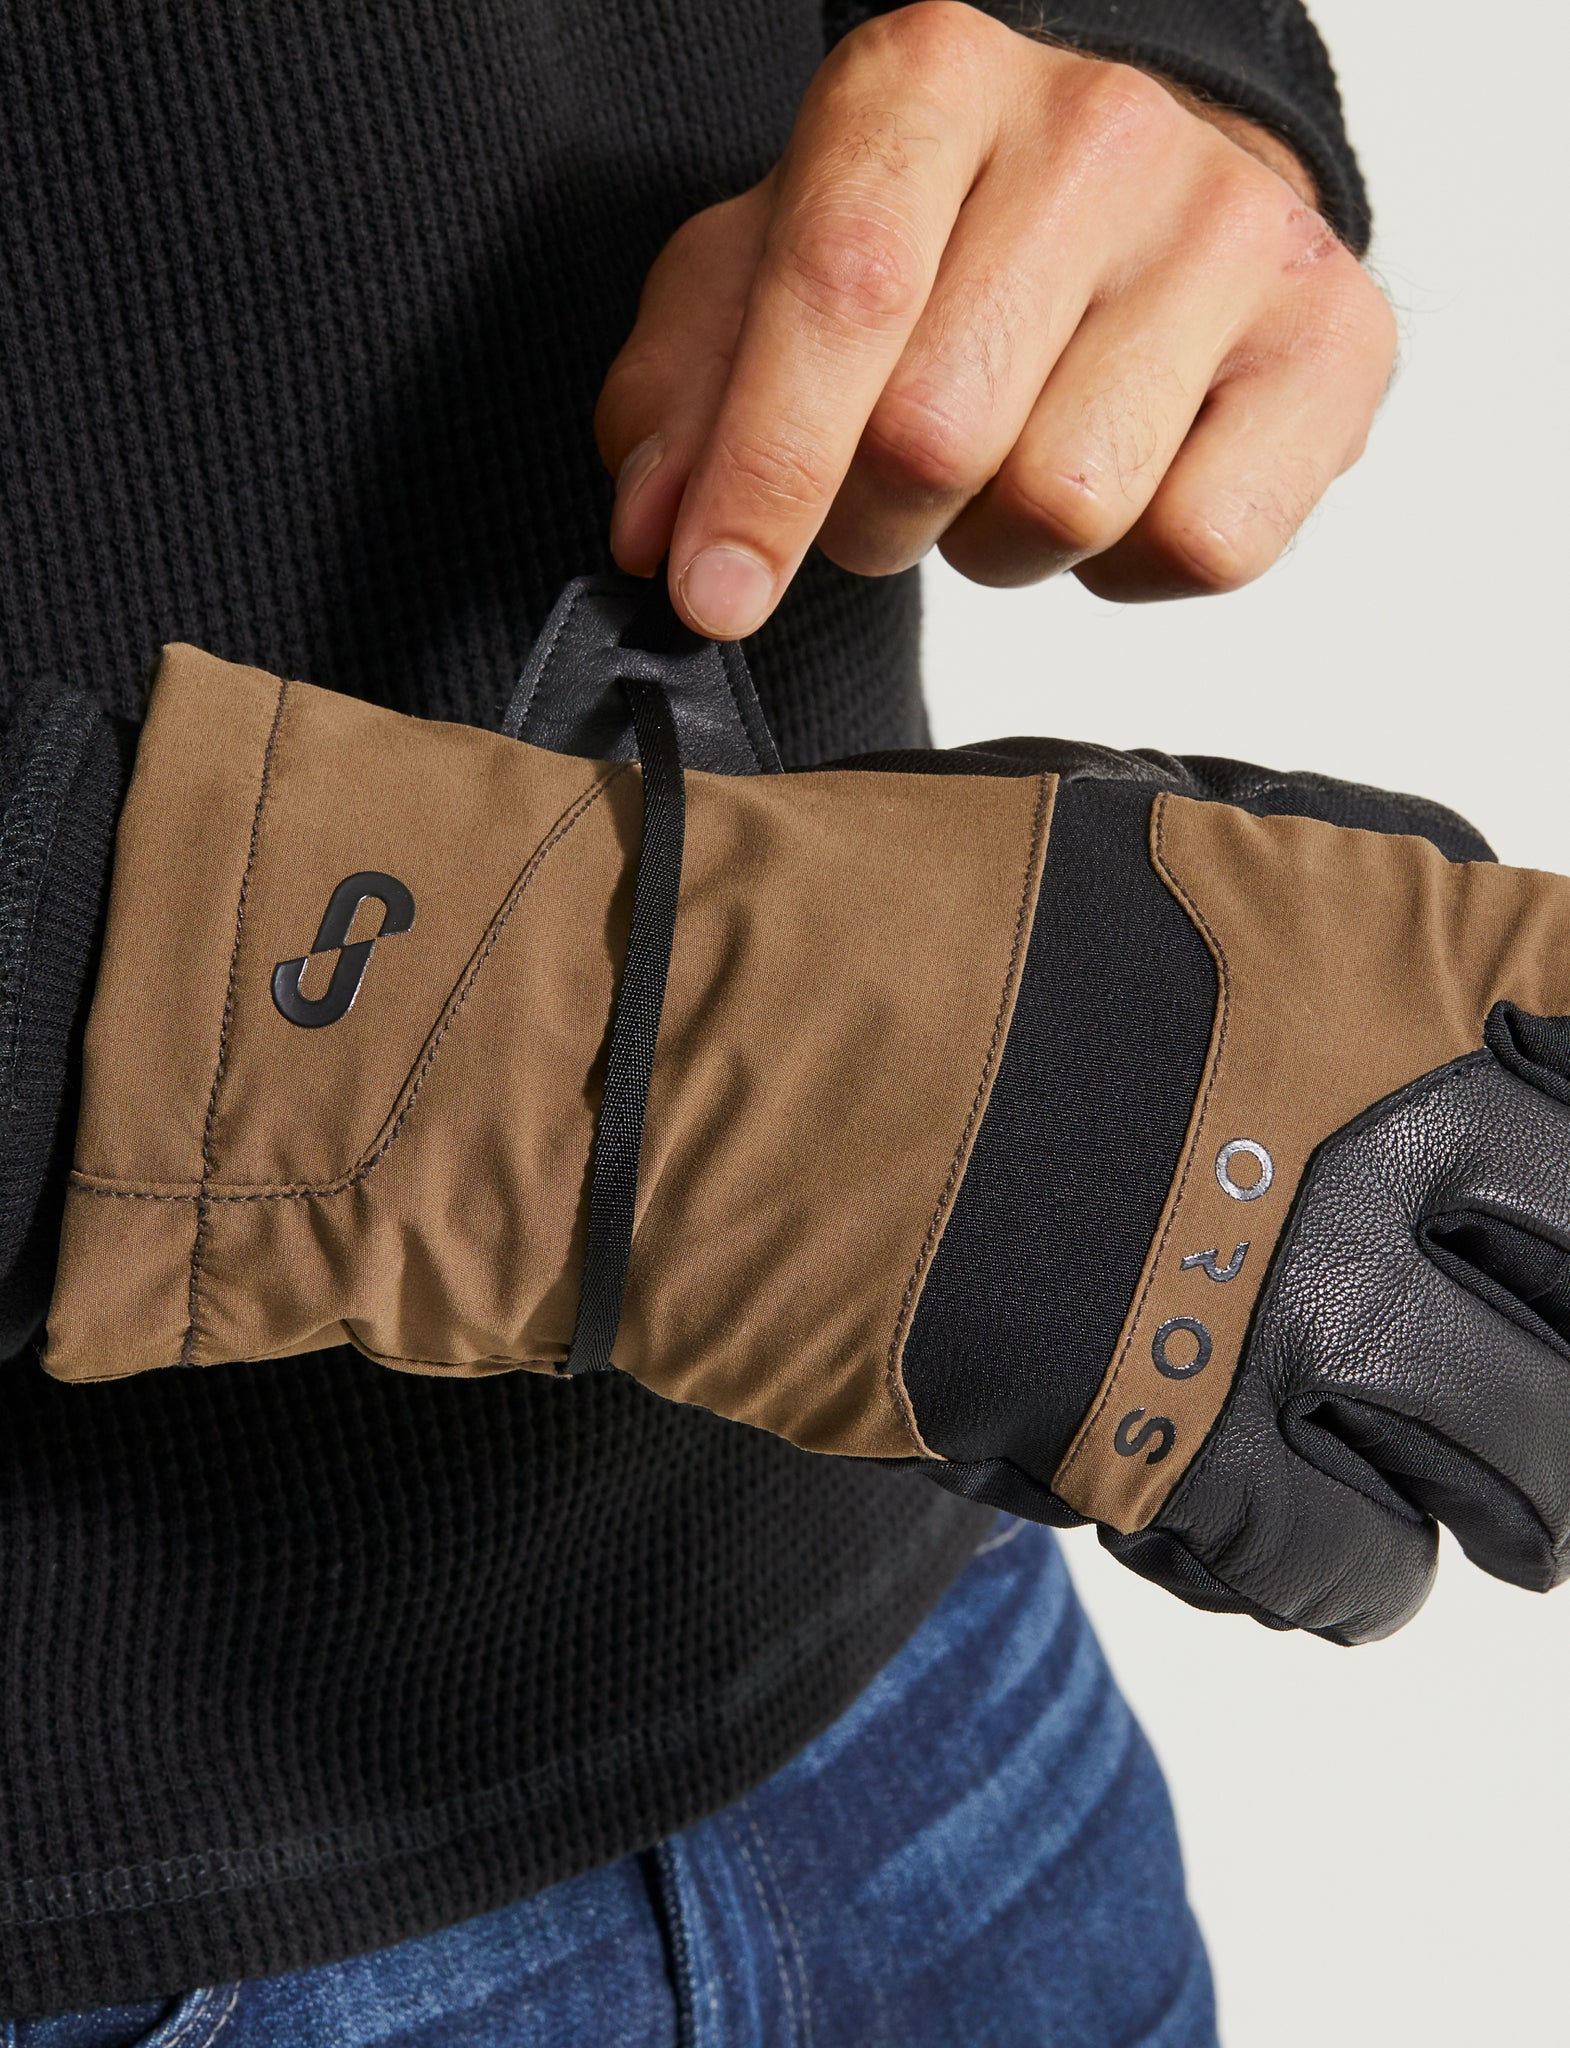 Men's Endeavour Gloves, color:Teak